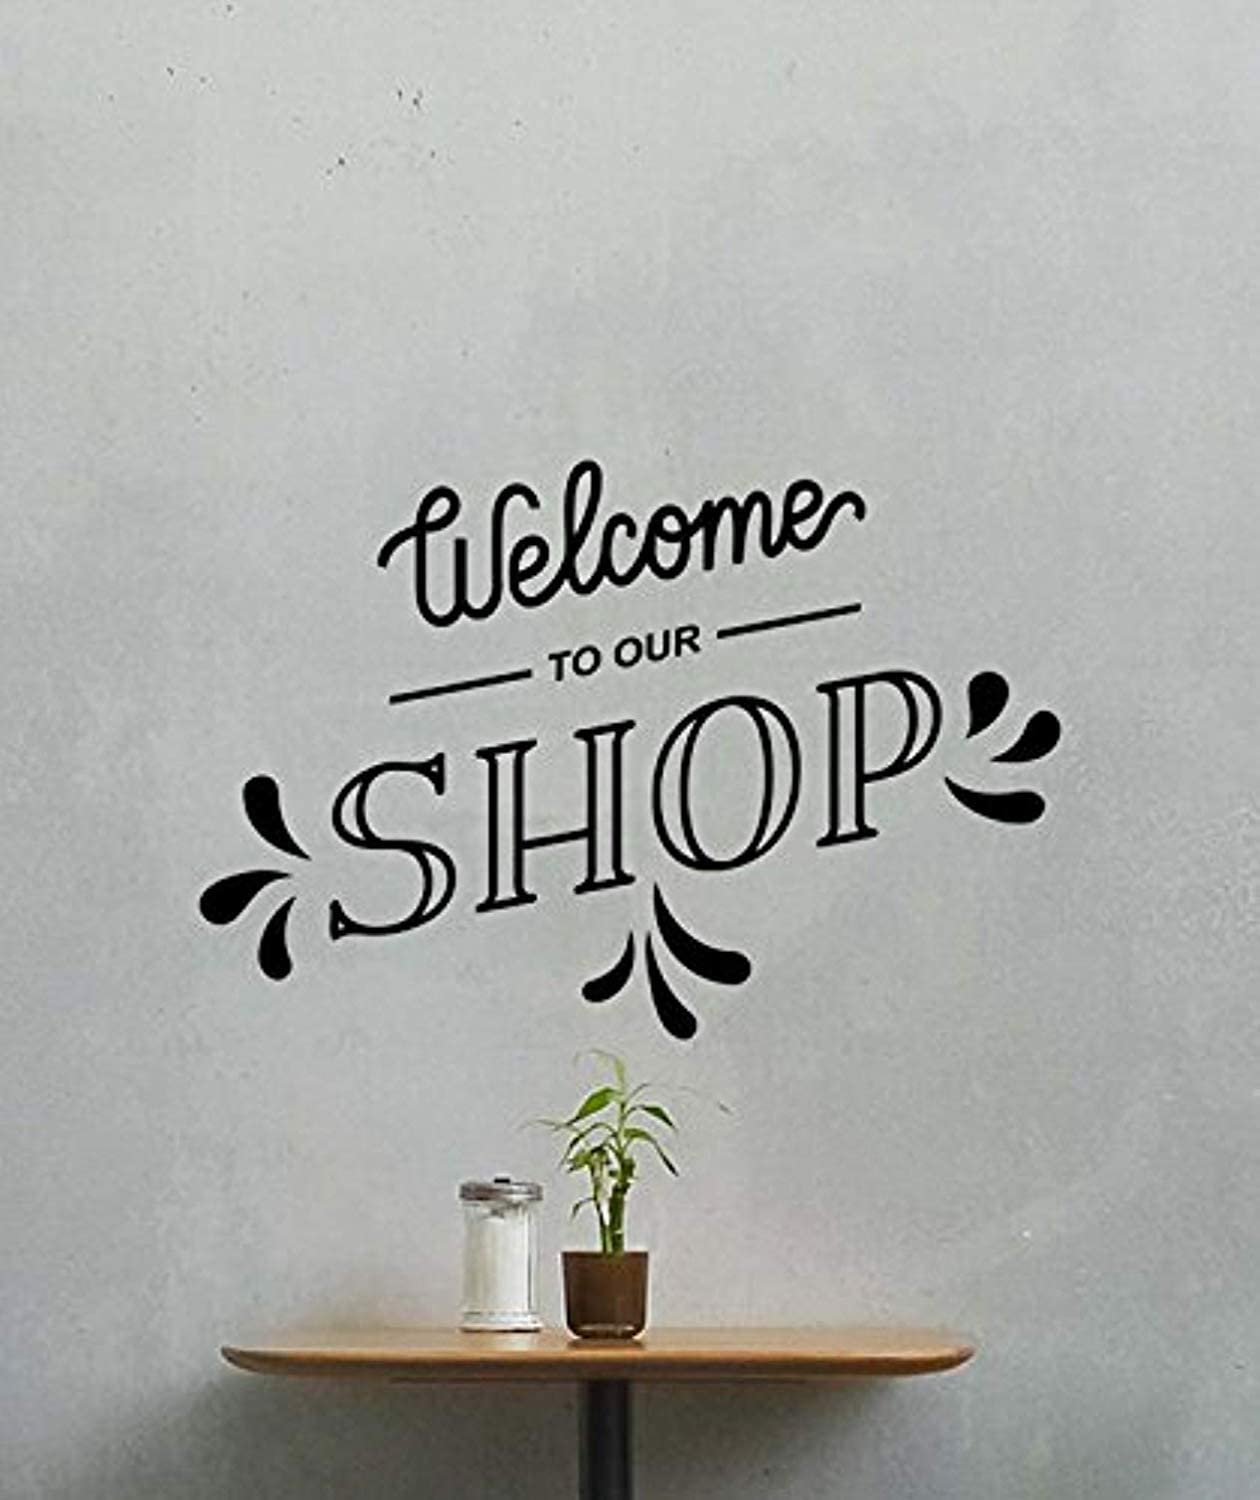 Custom Store Hours Decal Cute small Hours Business Sign Decal Front Door Entryway or Wall Vinyl Sticker Great Gift Idea  Decor